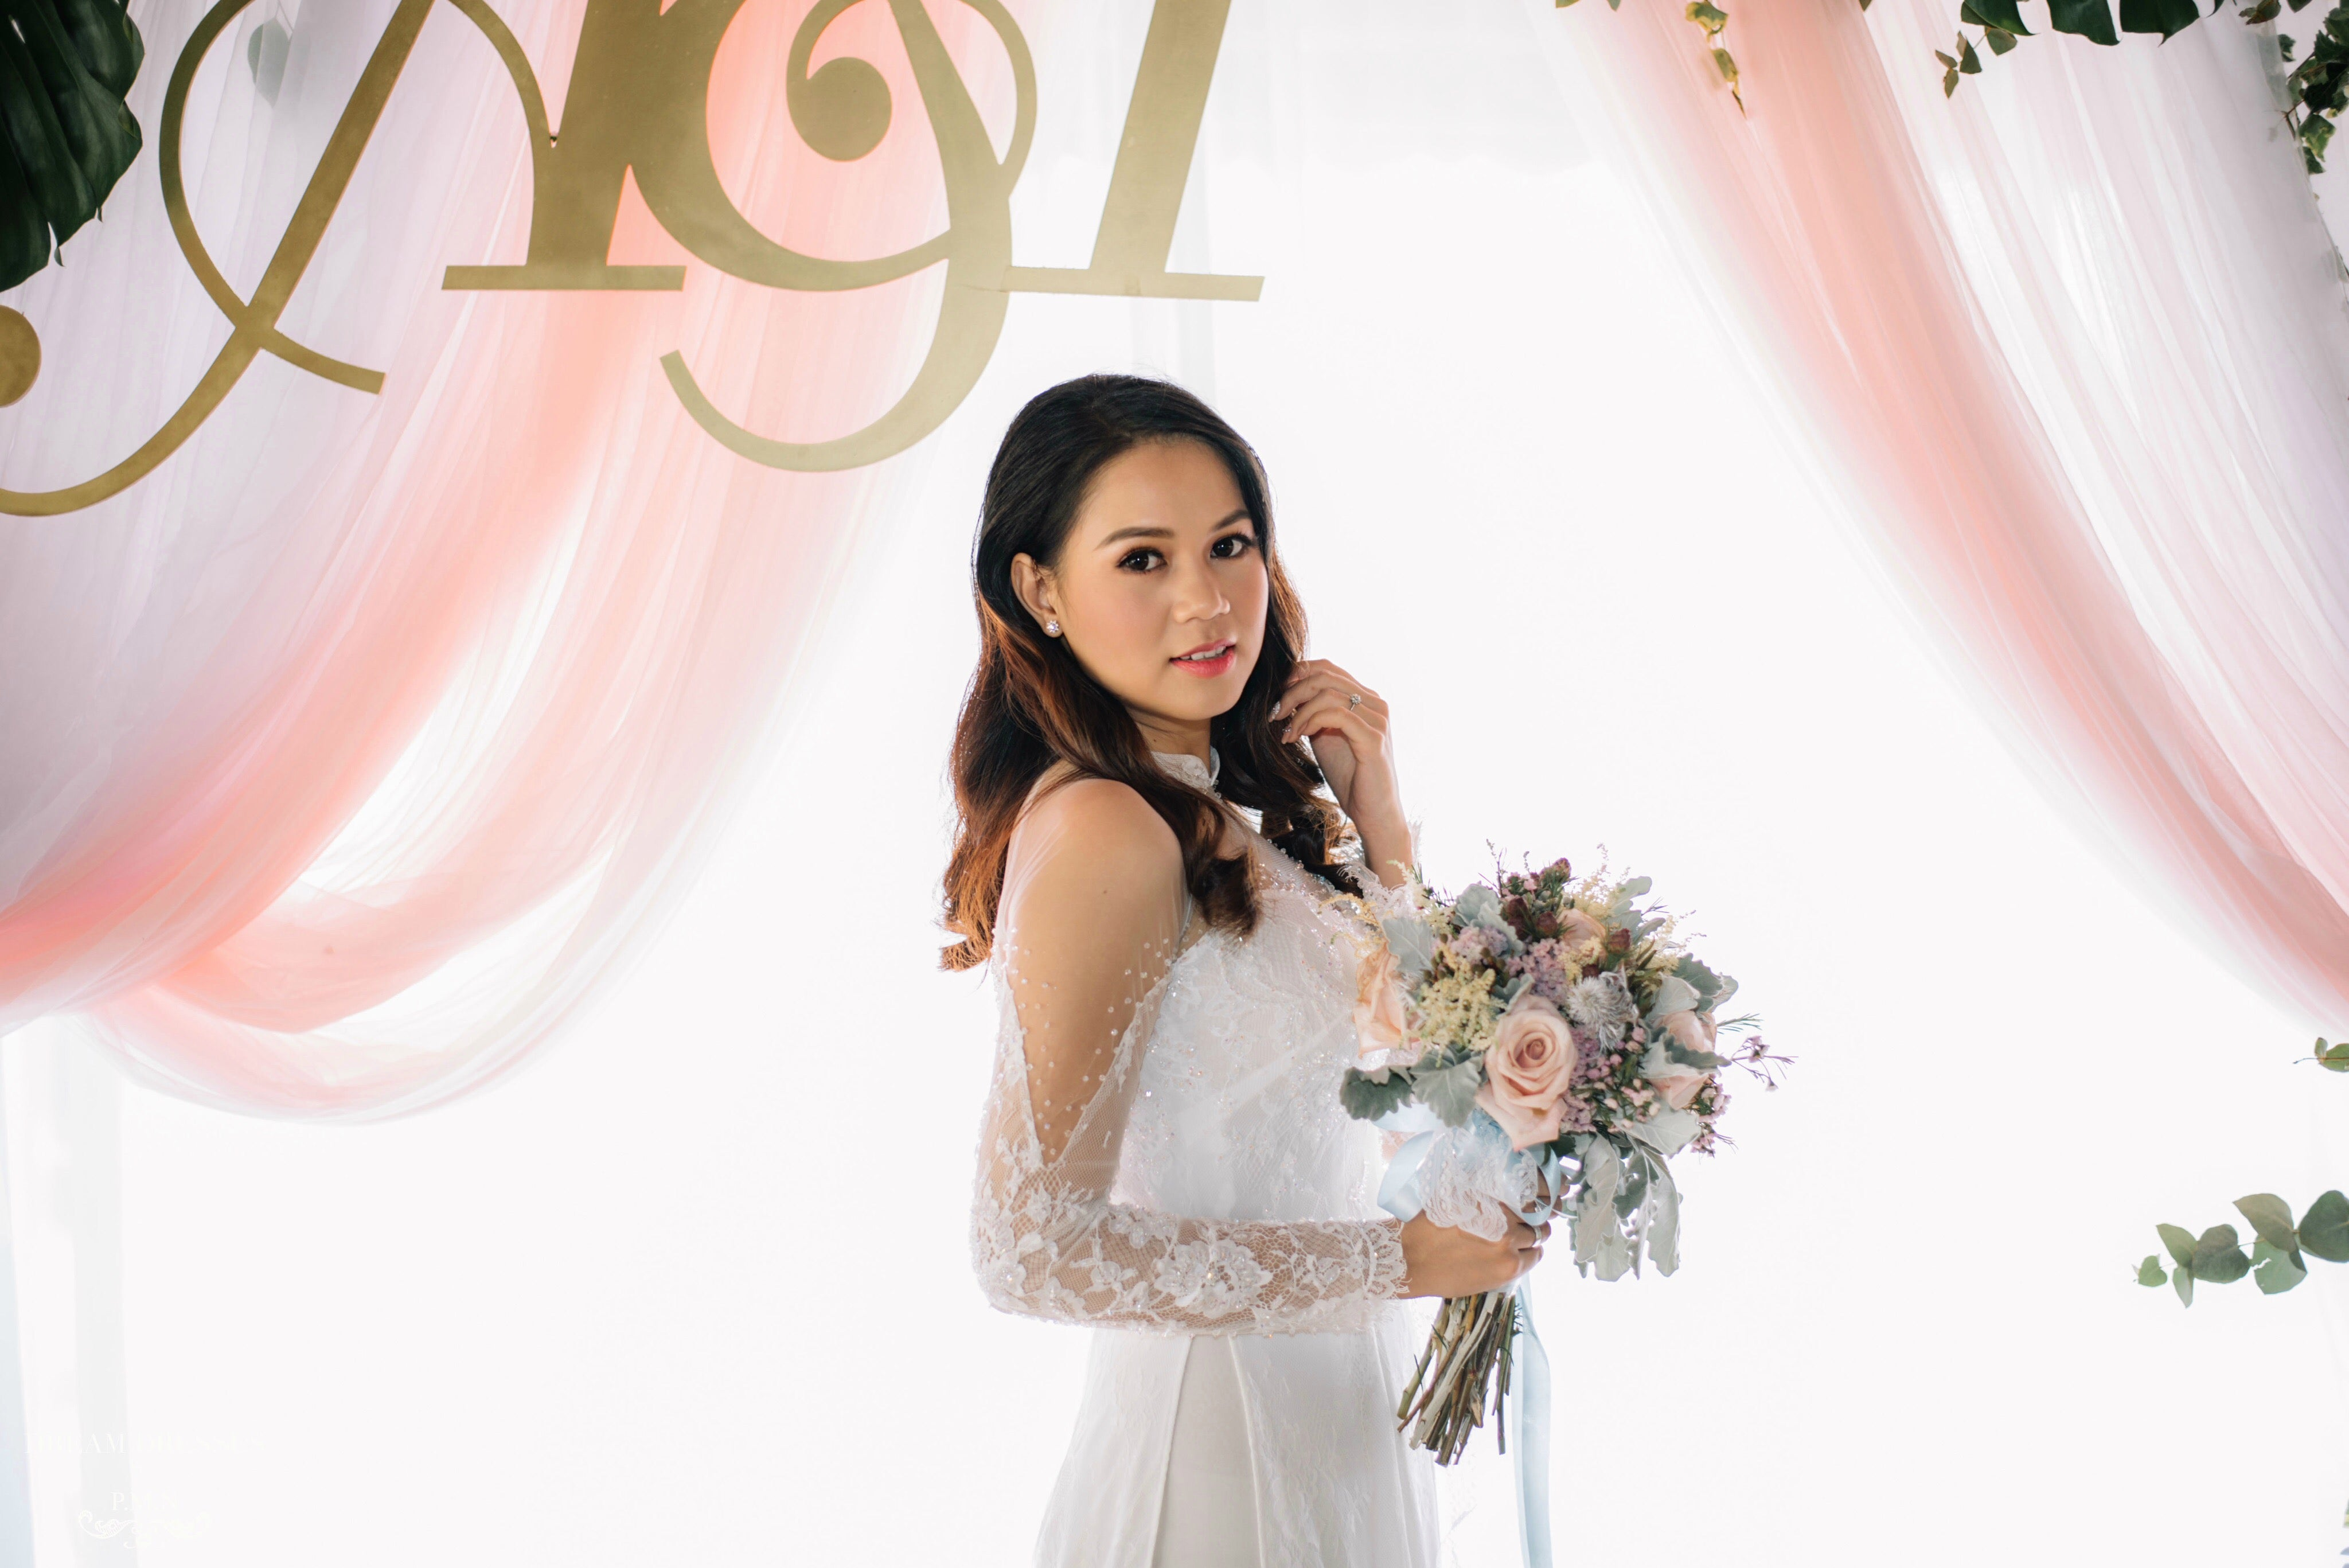 White Bridal Ao Dai | Vietnamese Lace Bridal Dress (#ISABELLE)